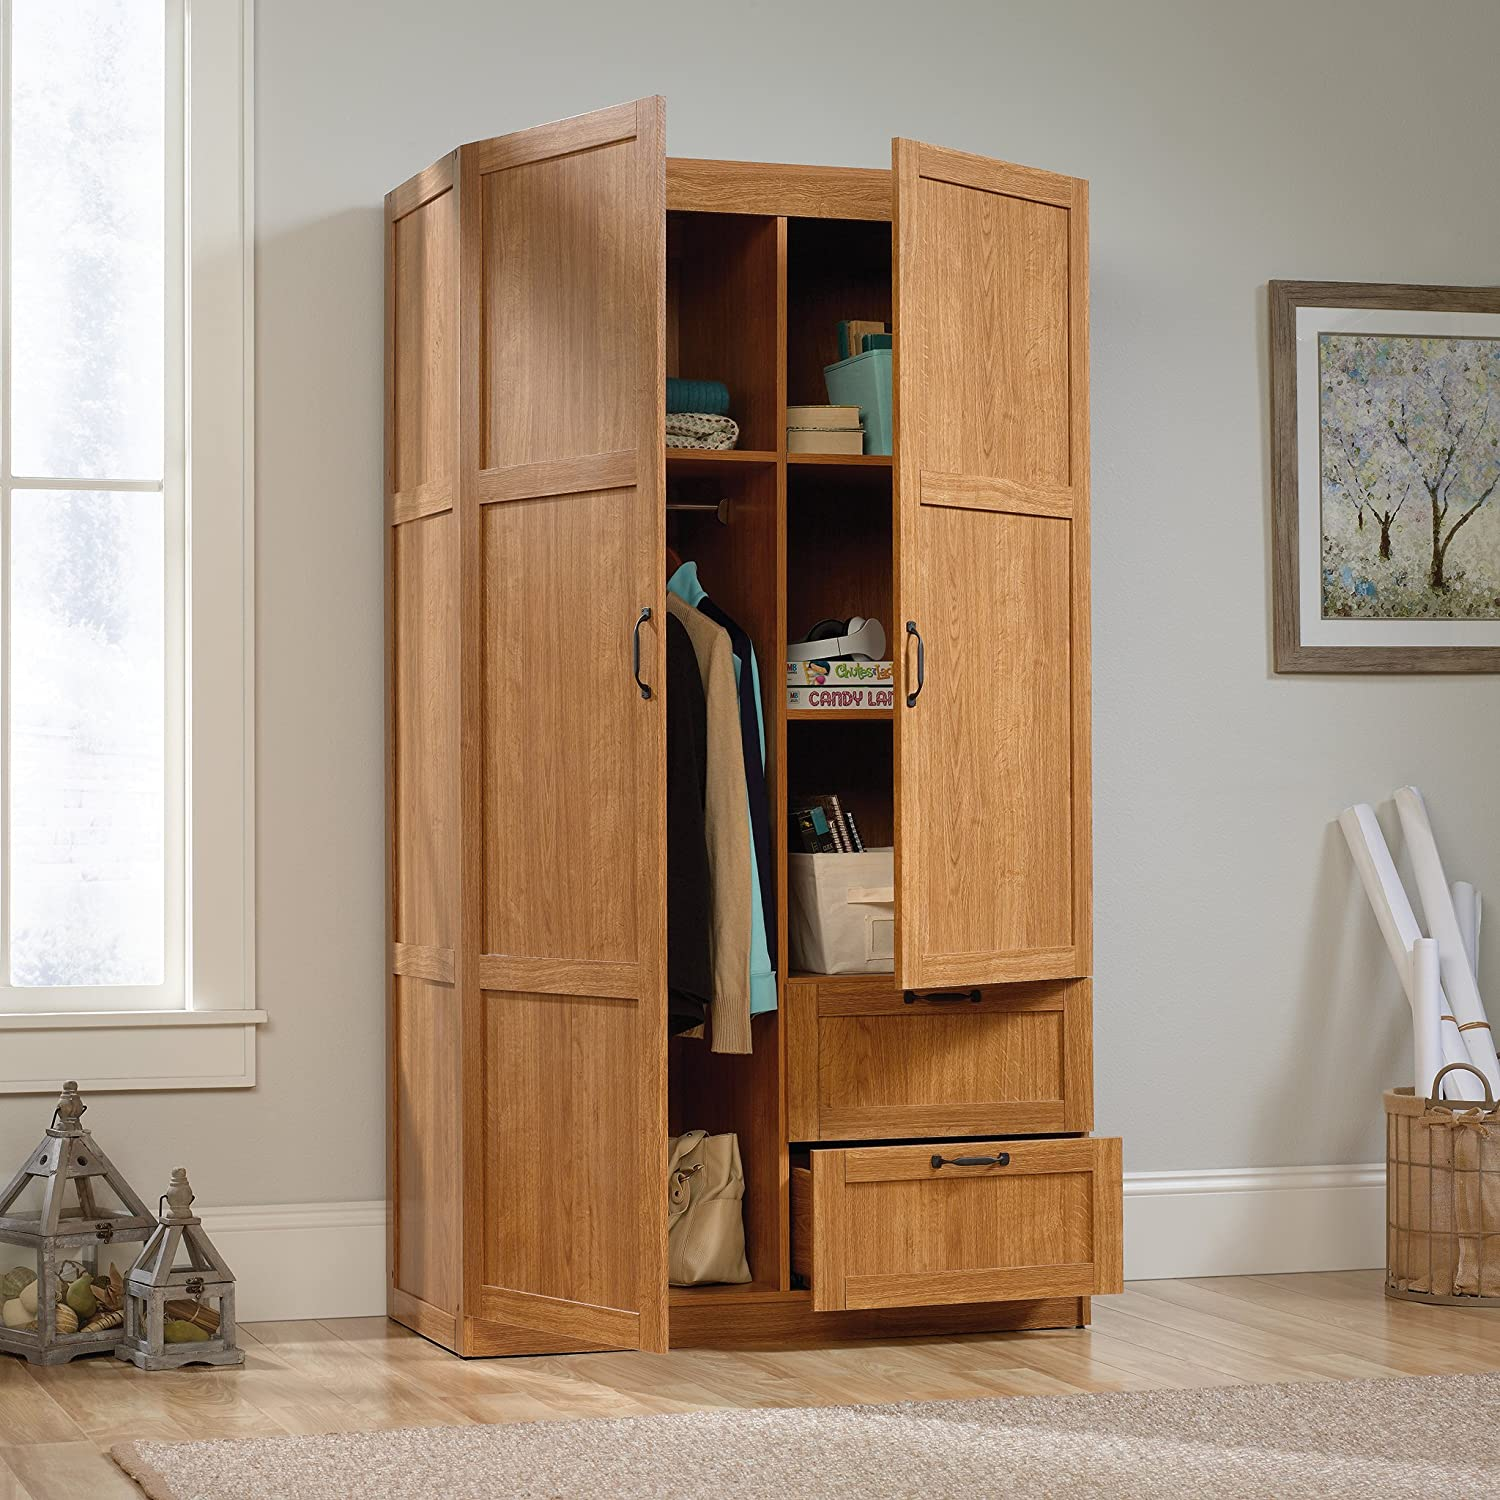 wardrobe sauder images awesome cabinet elegant gallery homeplus of modern storage